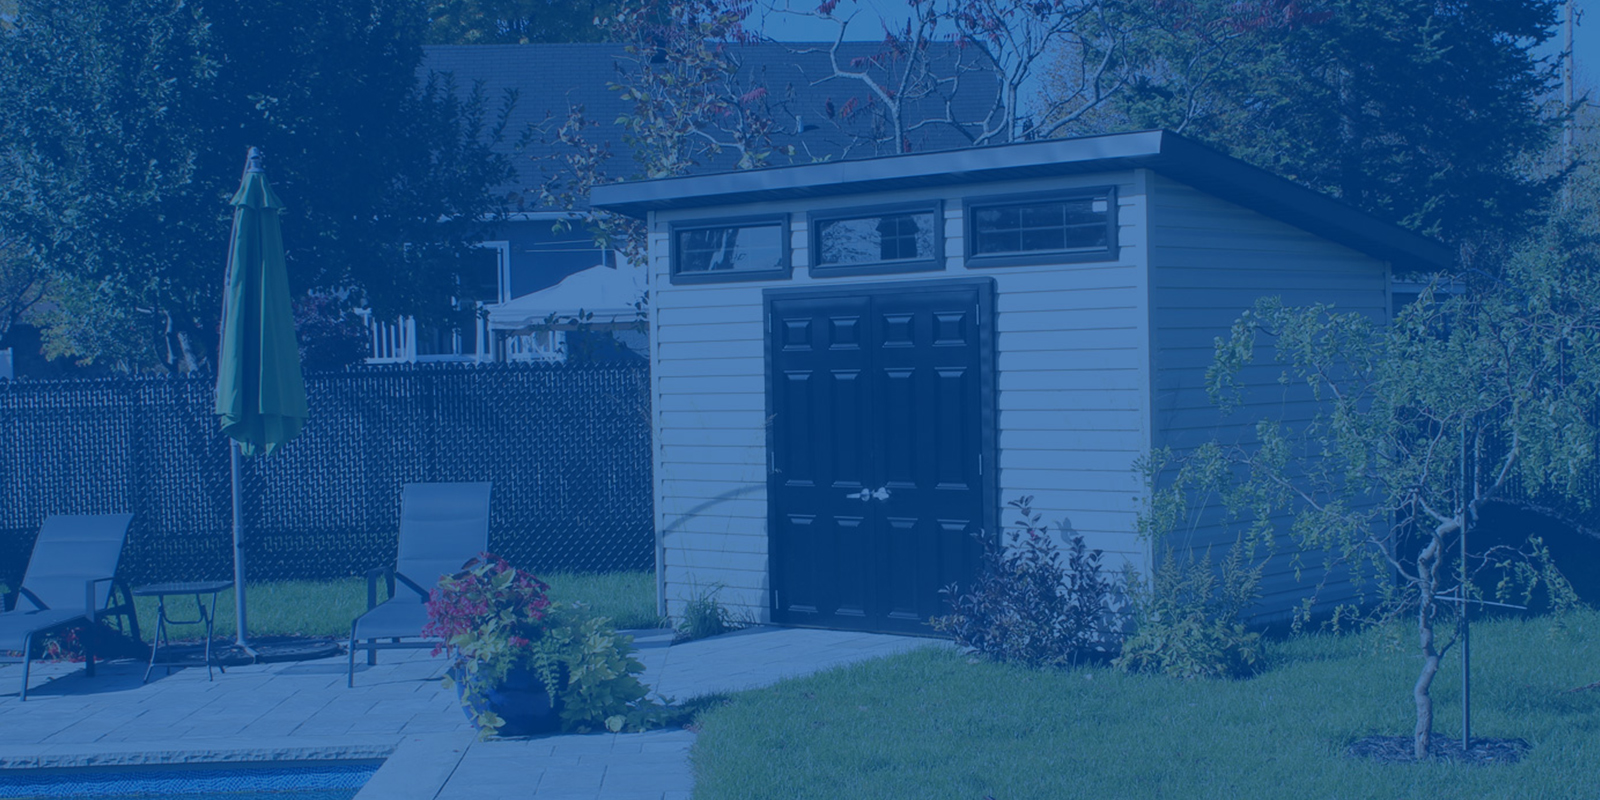 Cabanons Ideal, we have a shed created especially to fulfill your needs.